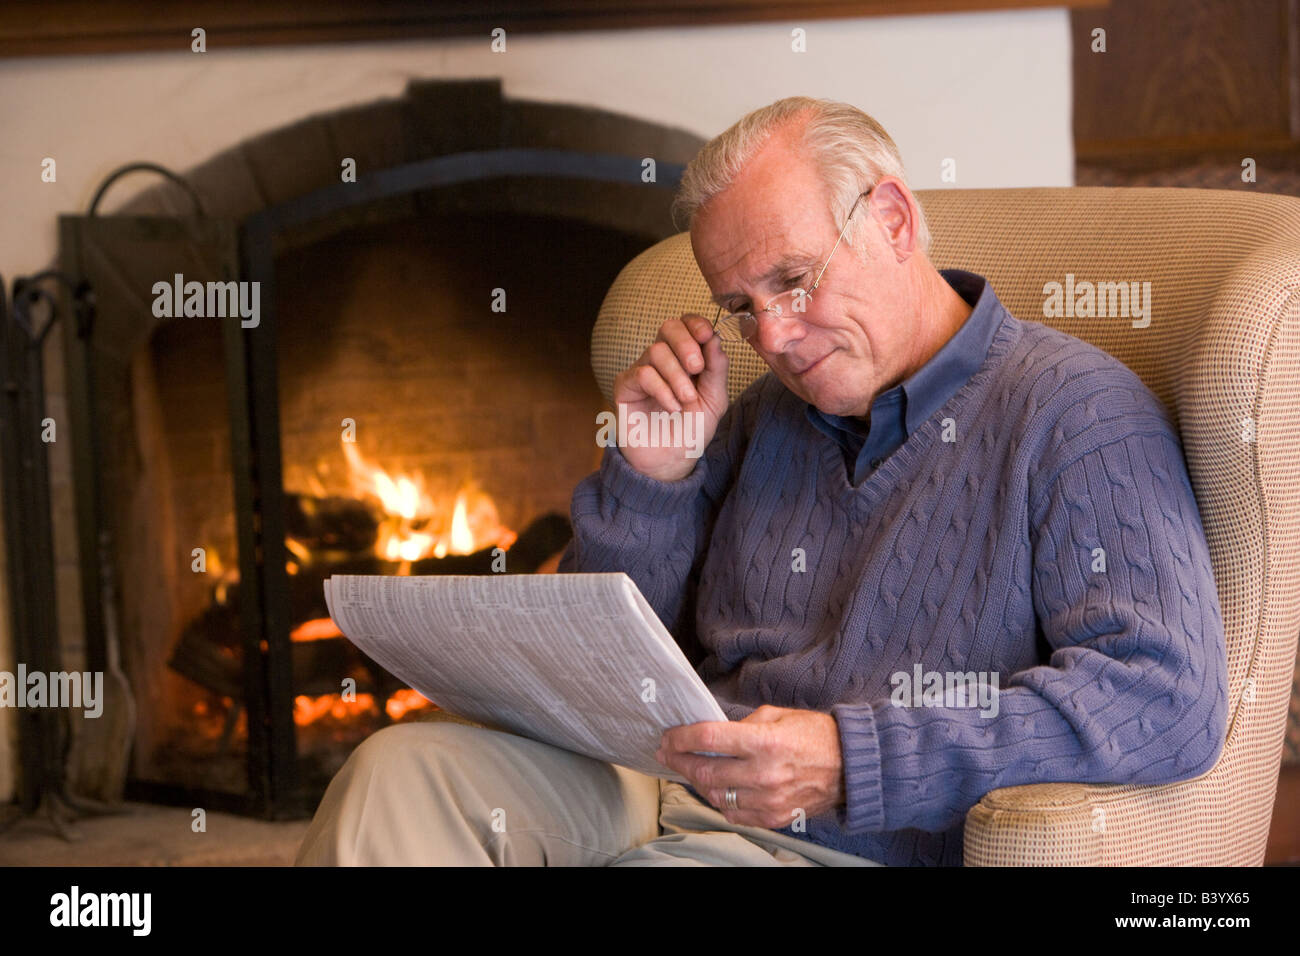 Man sitting in living room by fireplace with newspaper Stock Photo